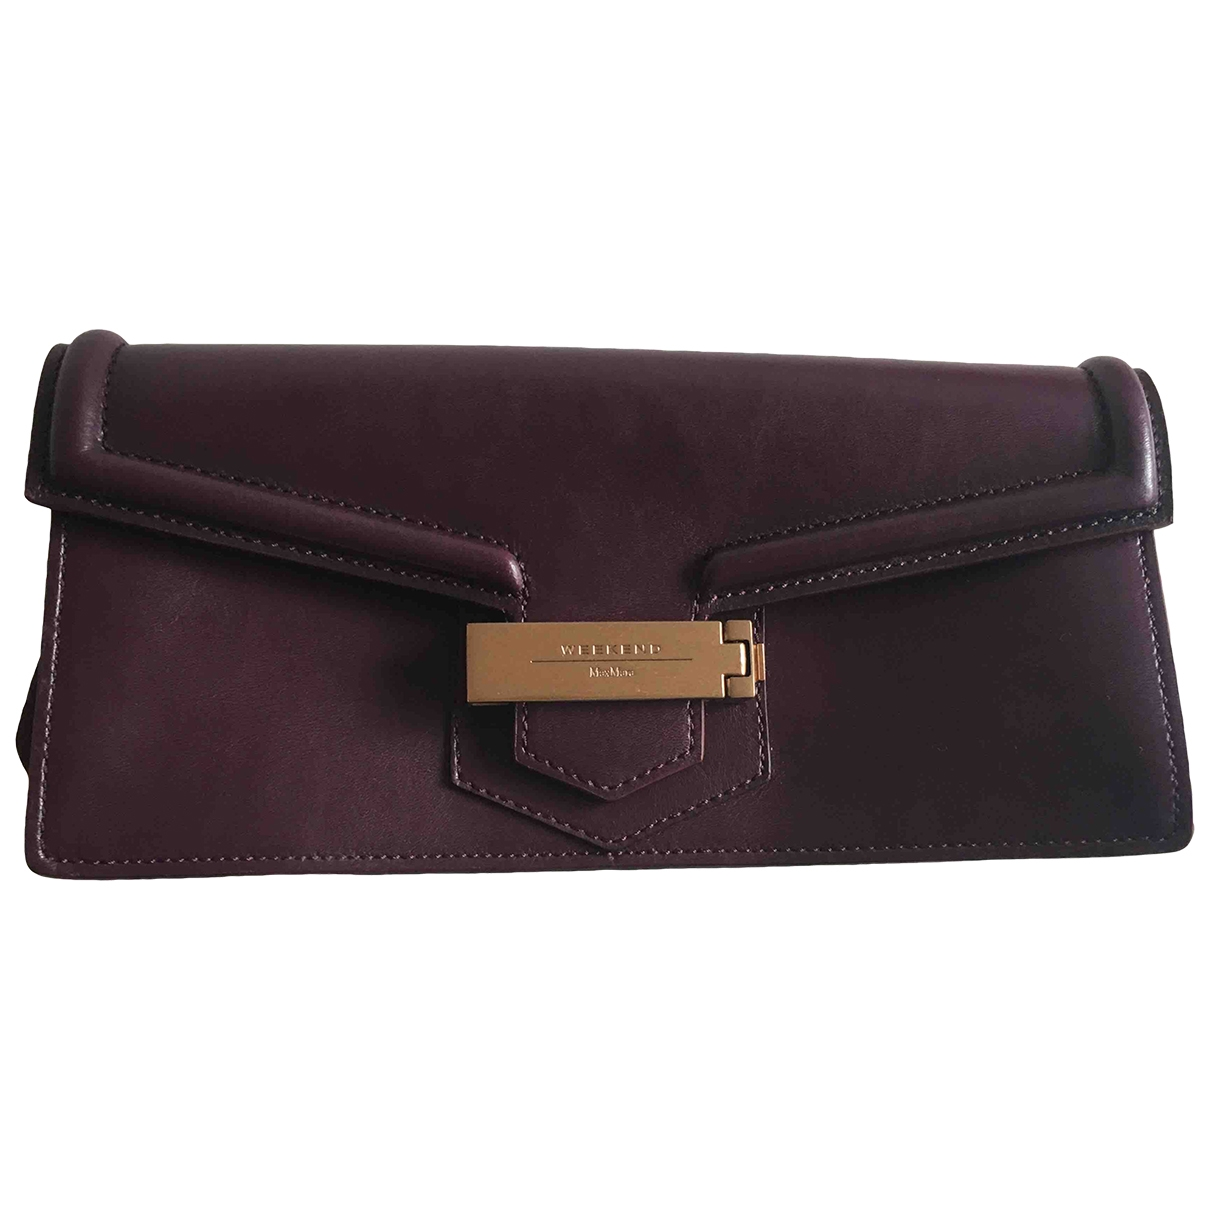 Max Mara Weekend \N Purple Leather Clutch bag for Women \N